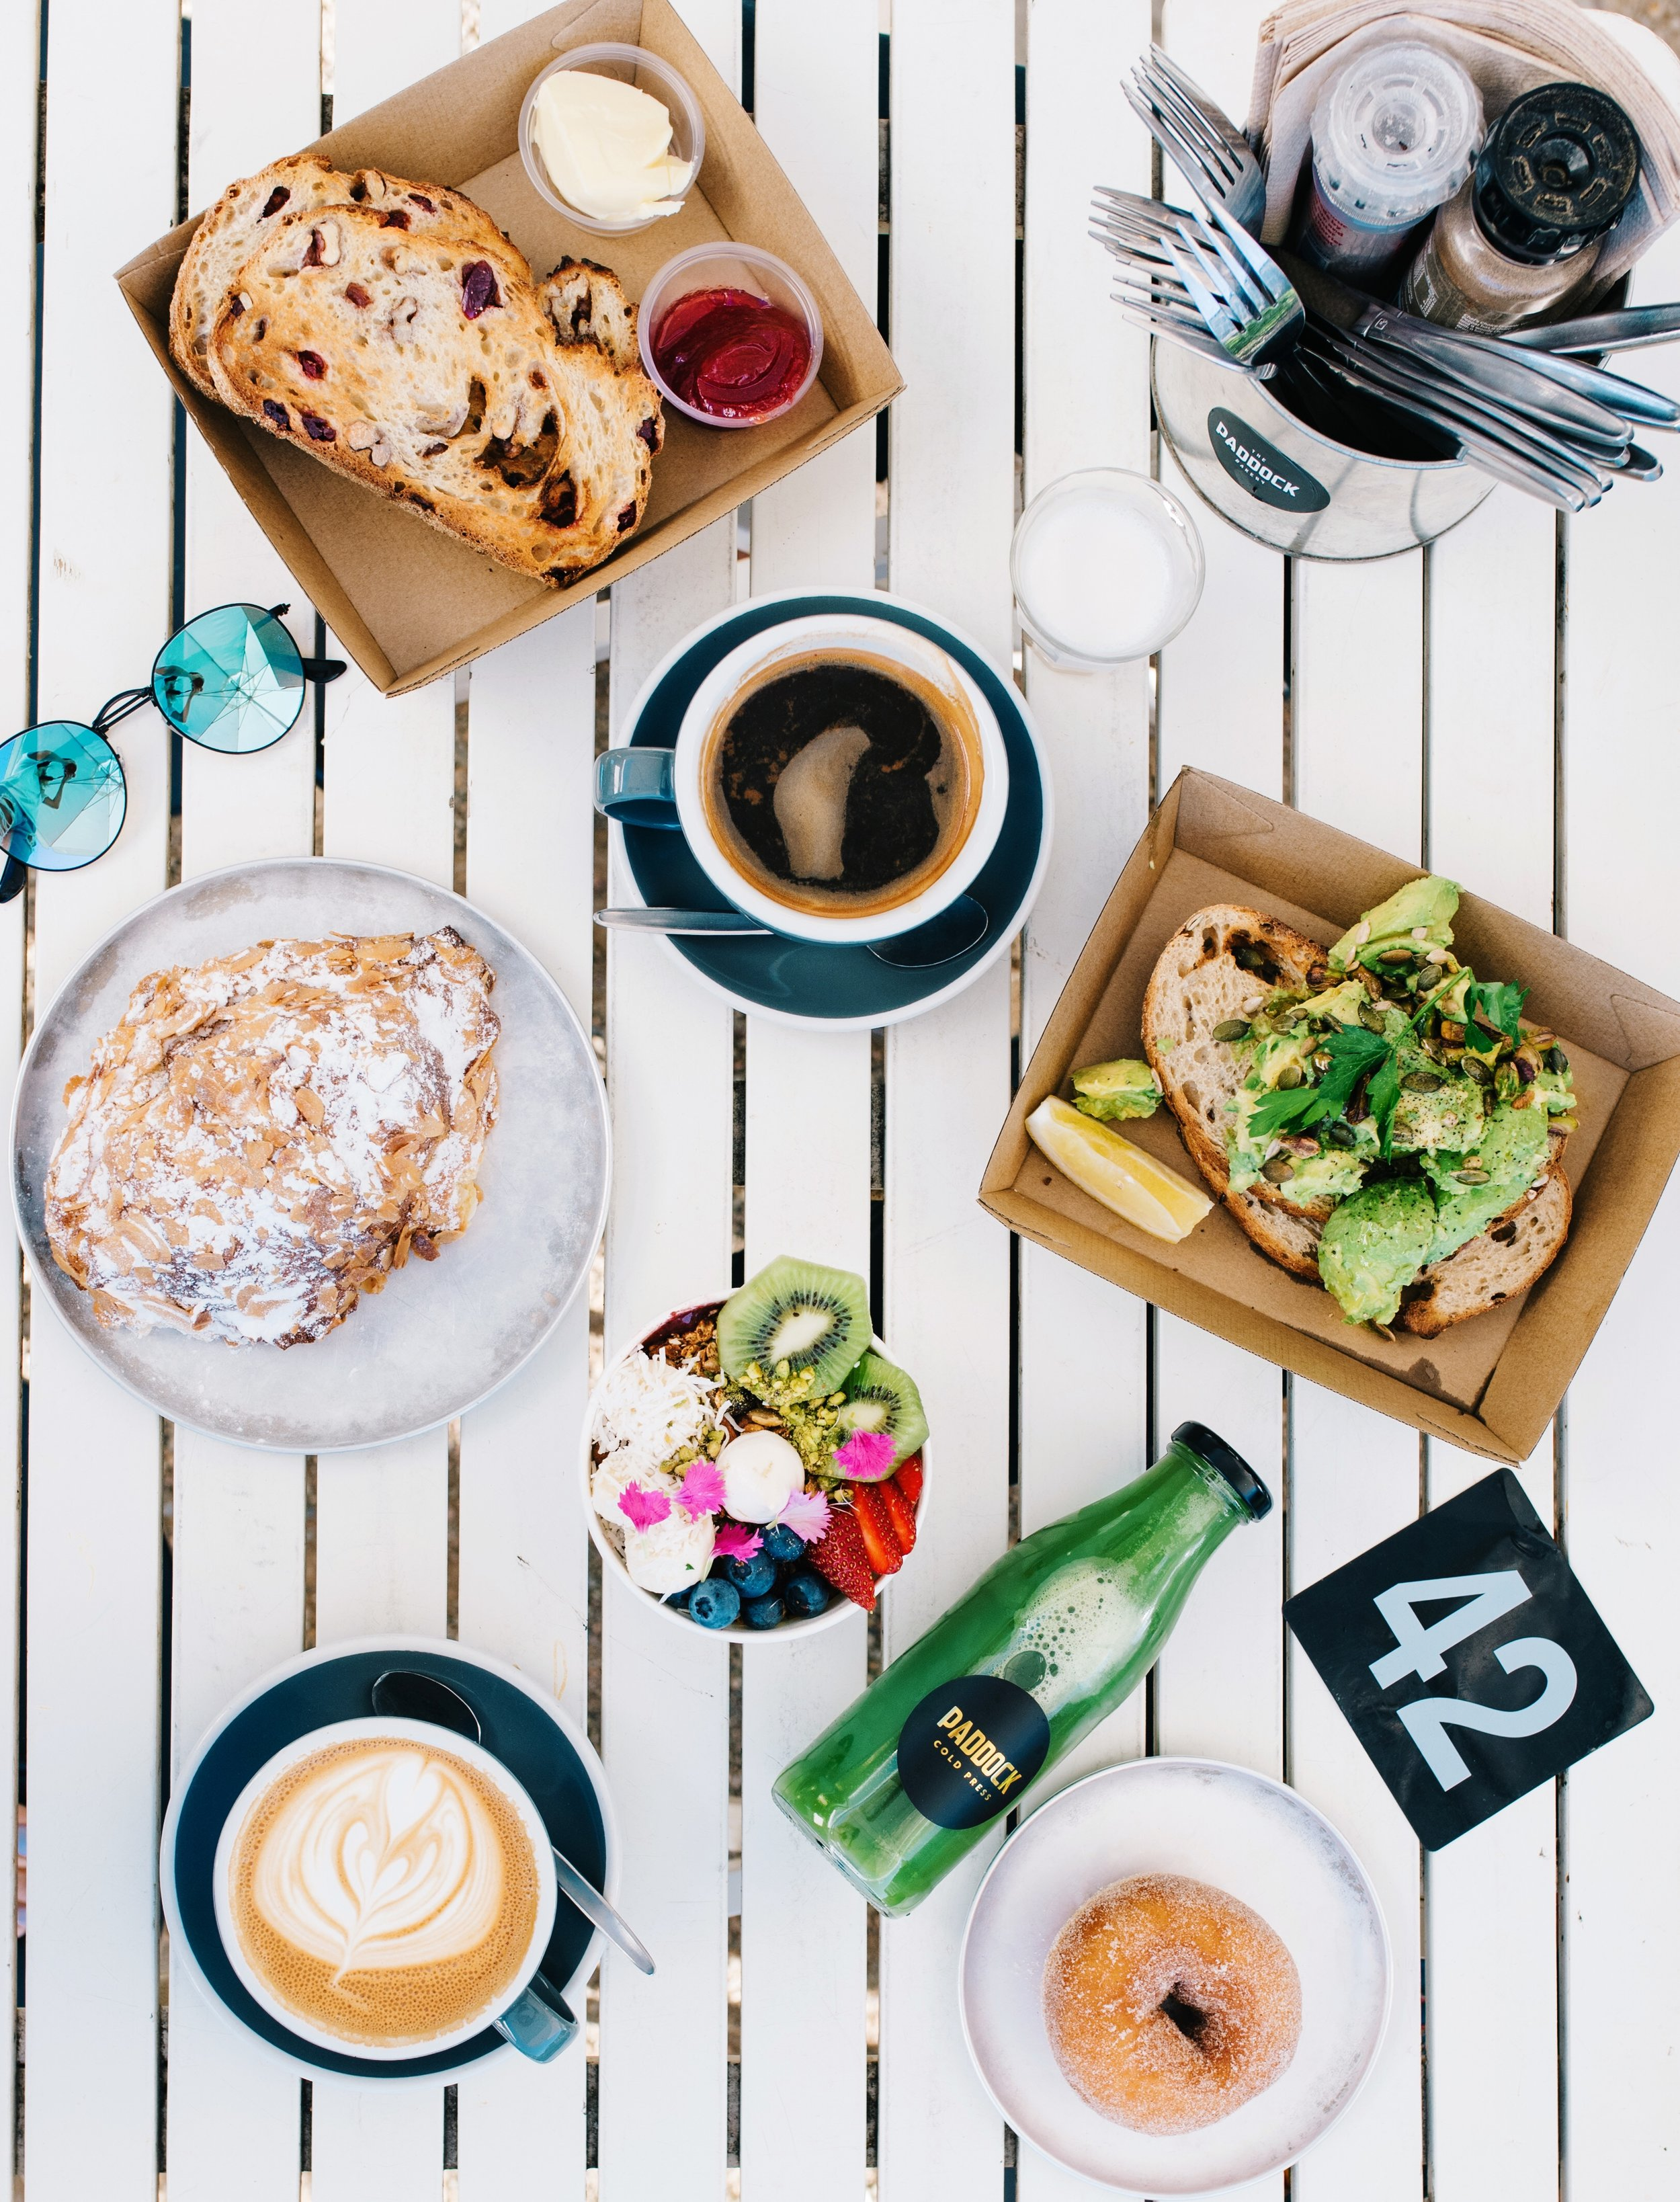 Top to bottom: cranberry walnut loaf, long black, almond croissant, avo toast, acai bowl, cold press juice, latte and donut